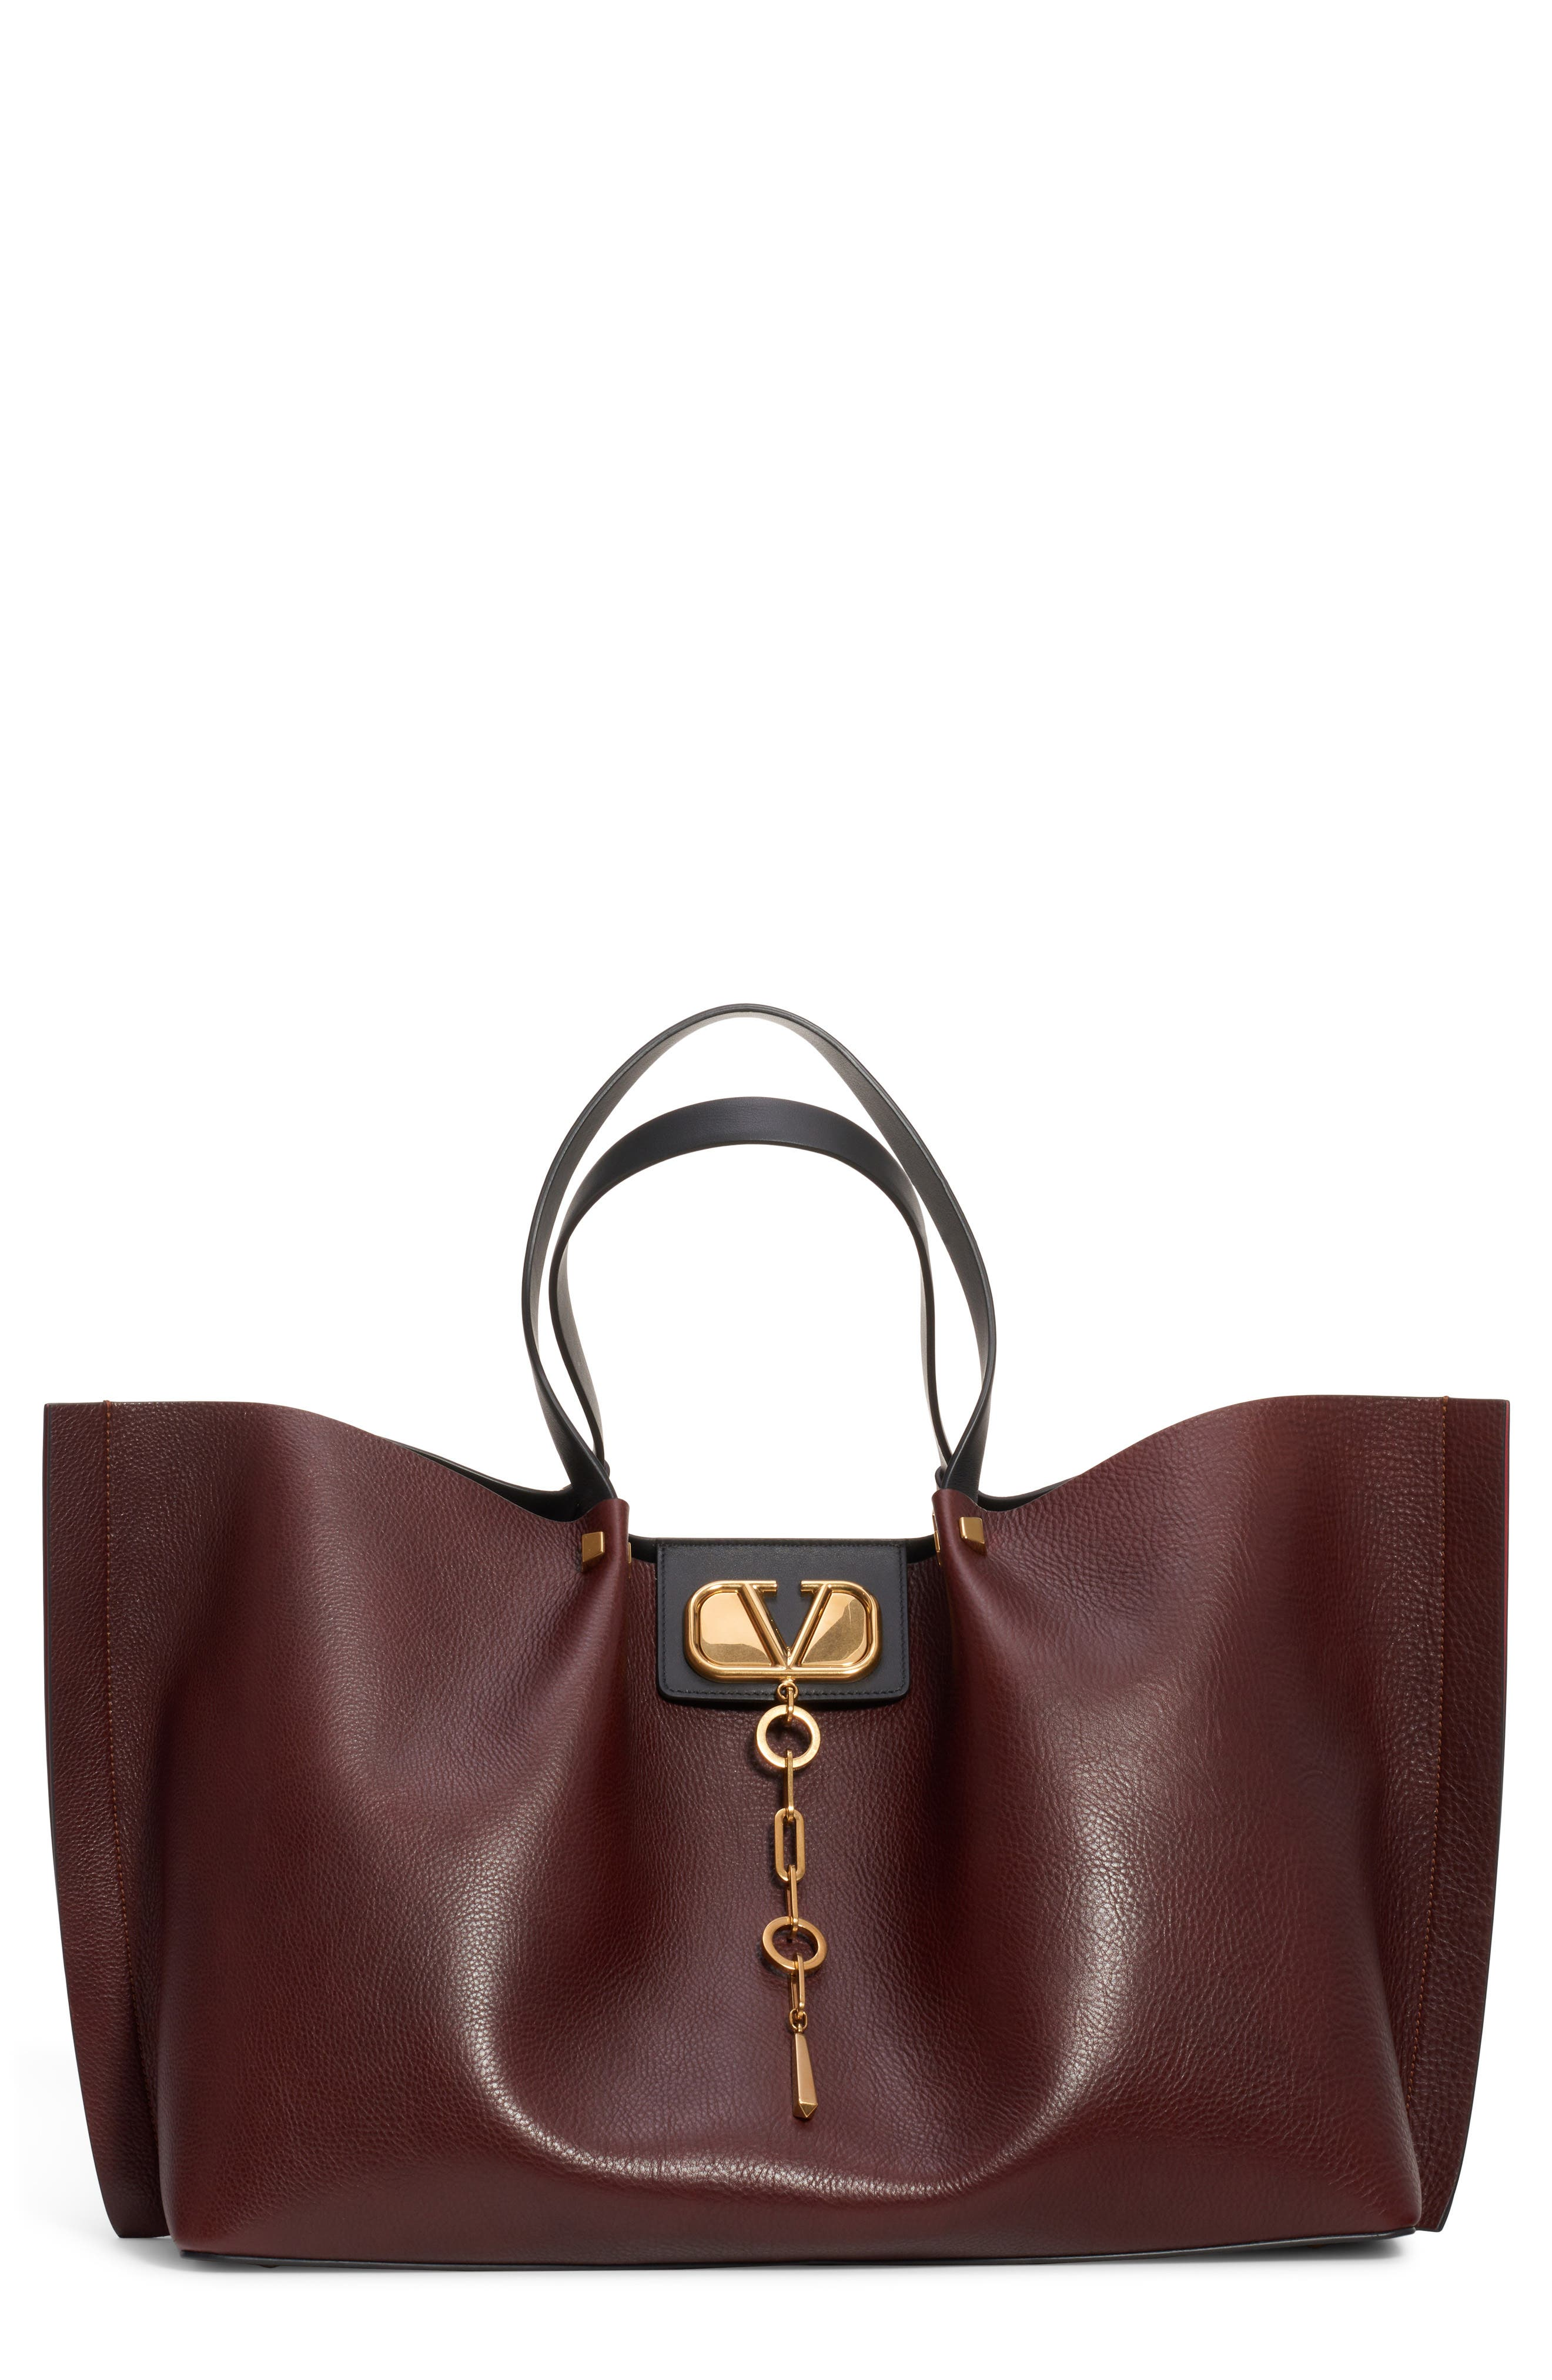 Large Go Logo Leather Tote, Main, color, MORO/ NERO/ ROUGE PUR